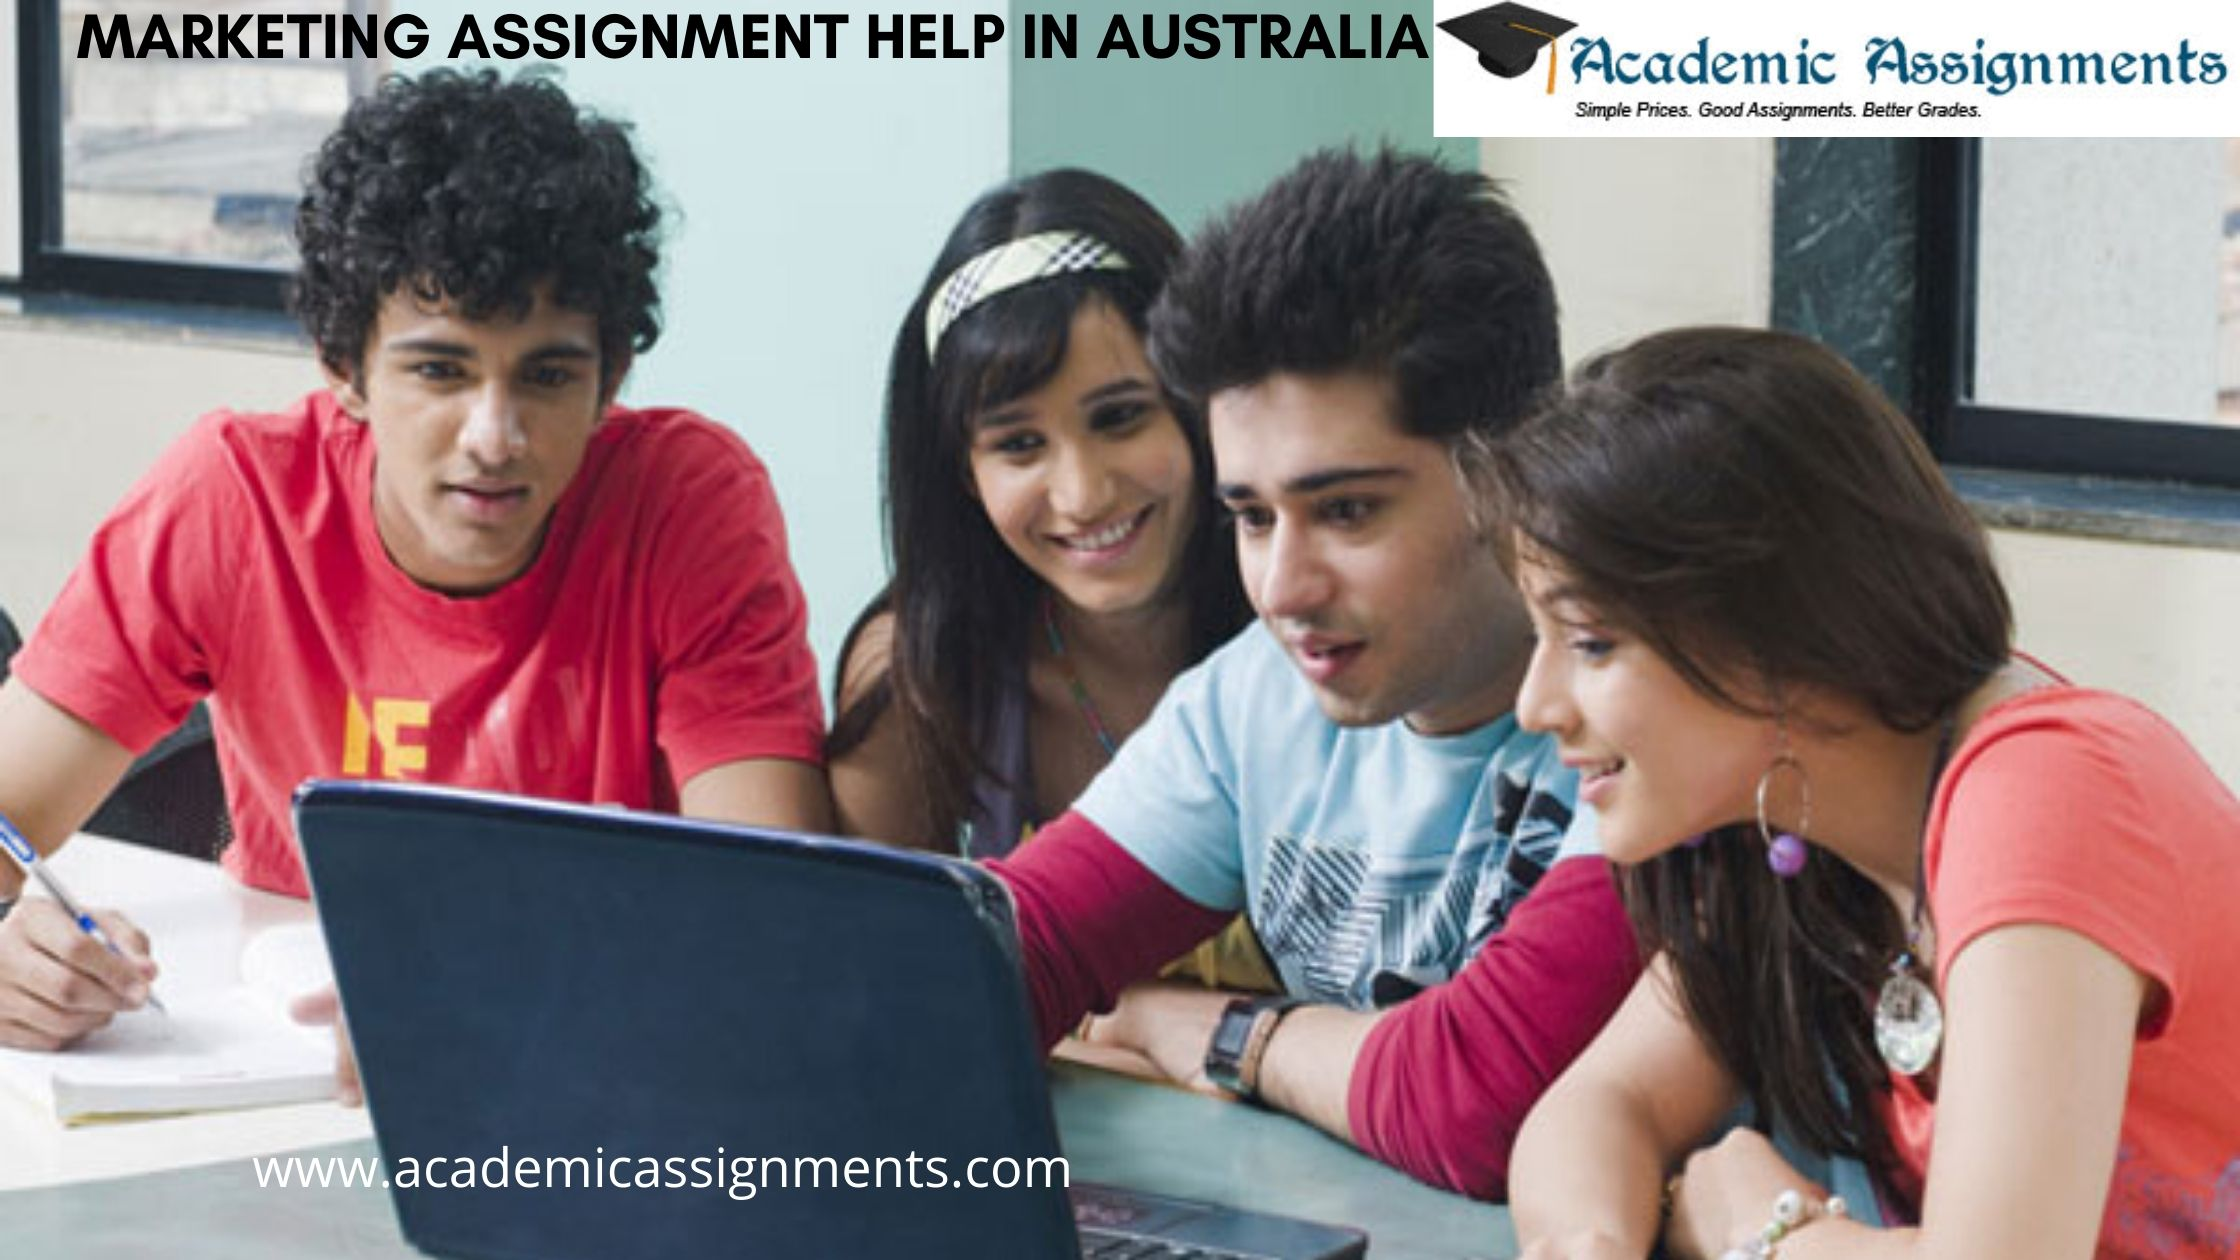 Marketing Assignment Help in Australia